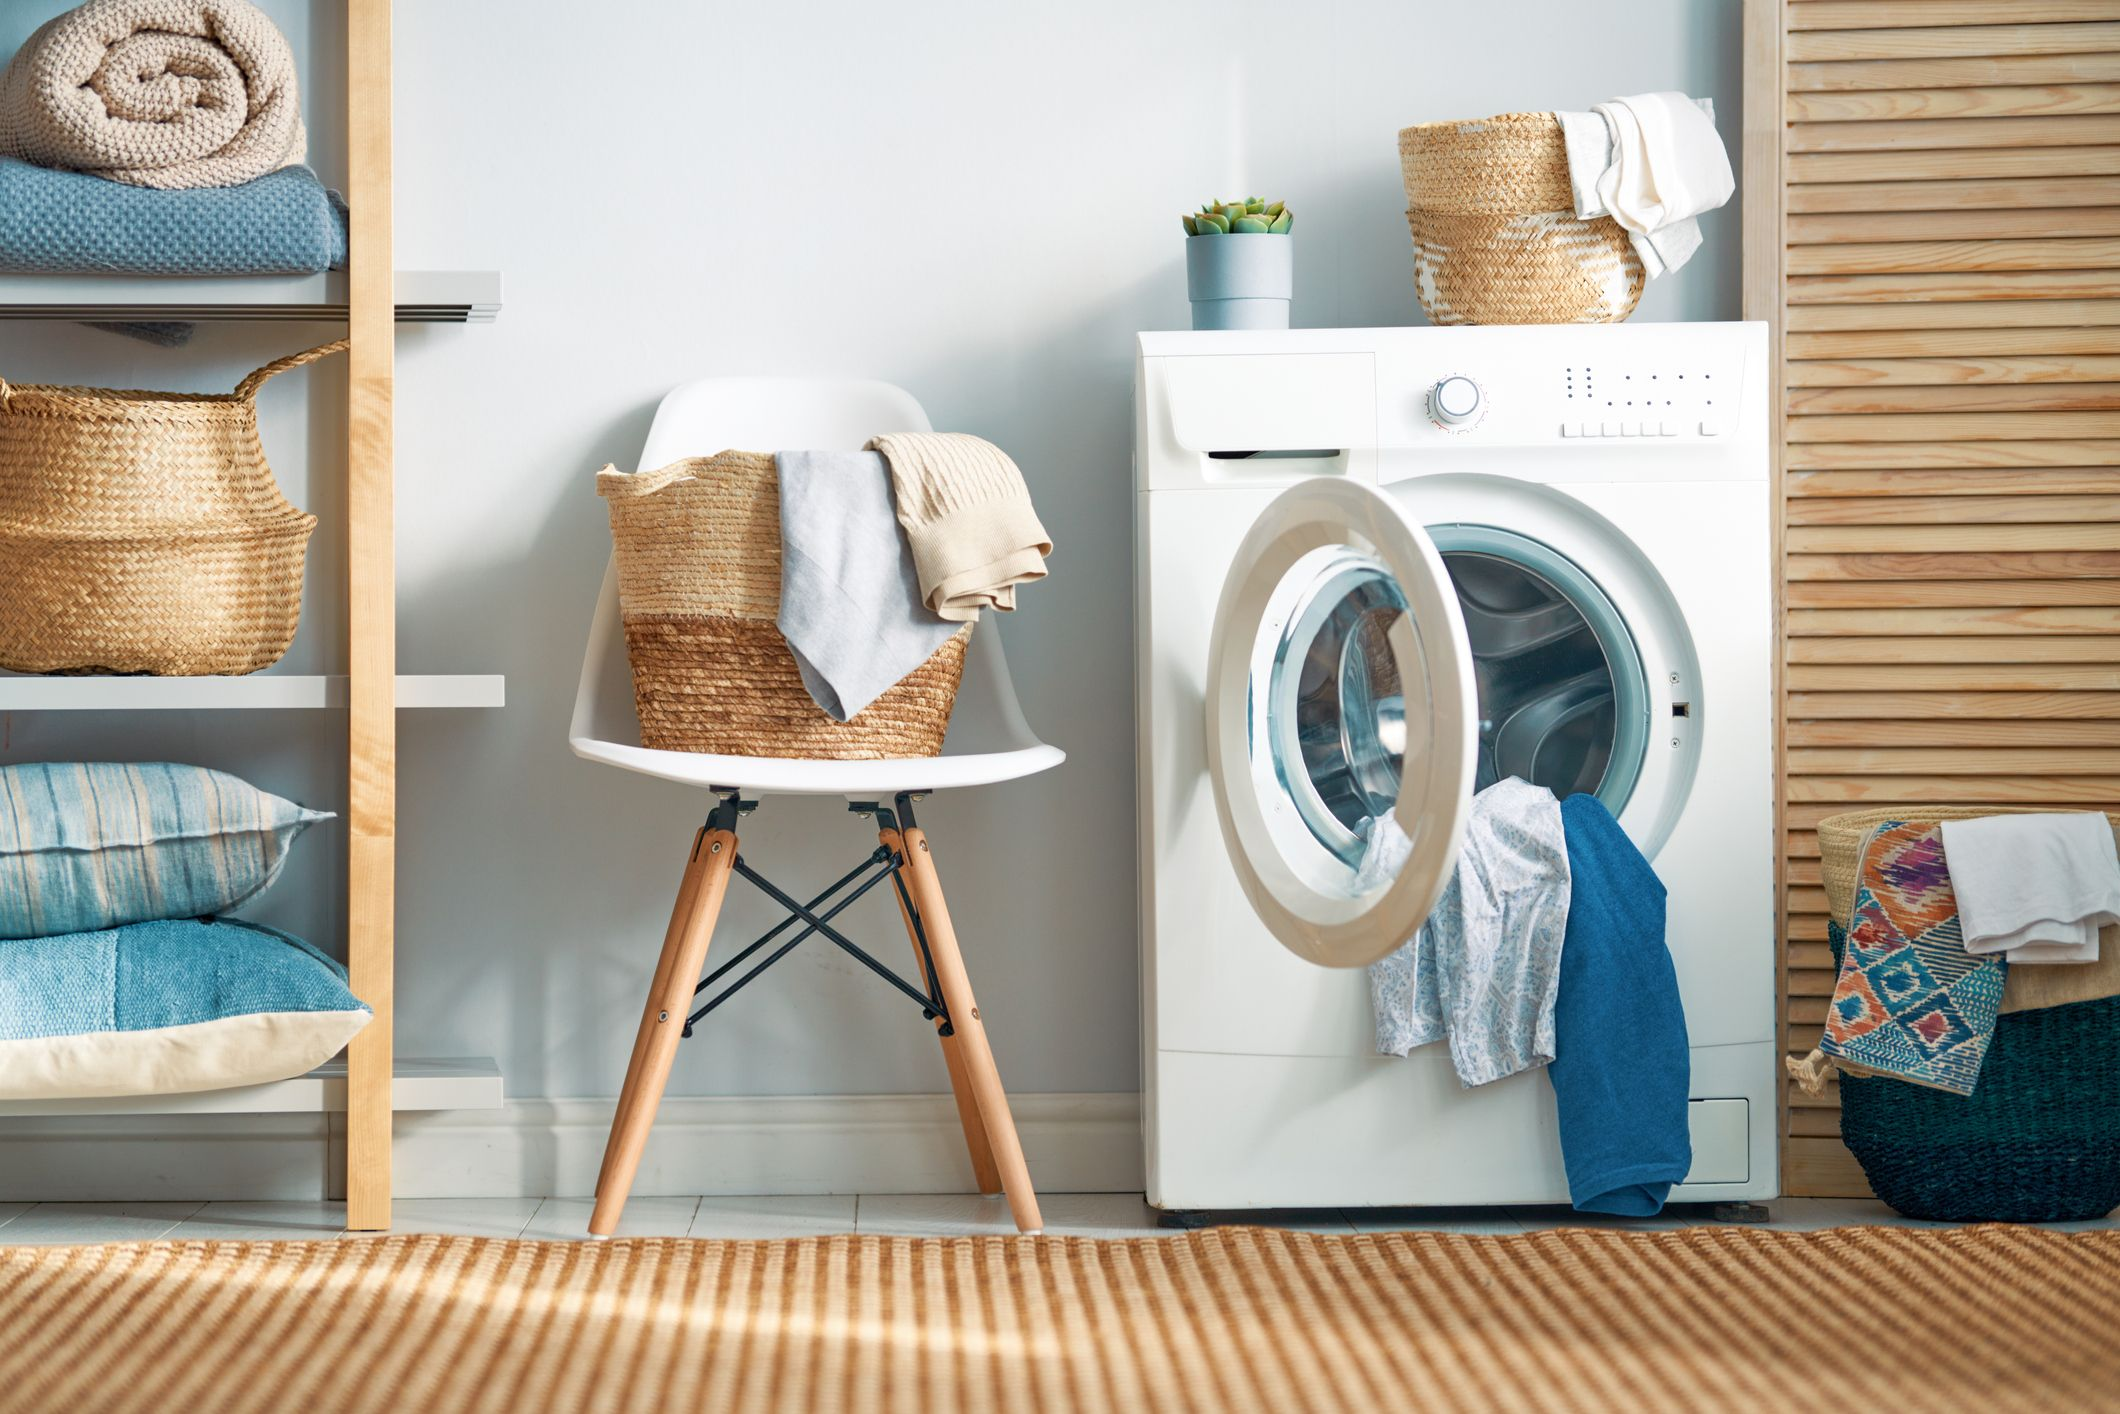 12 Best Laundry Room Ideas - Clever Laundry Room Storage Ideas